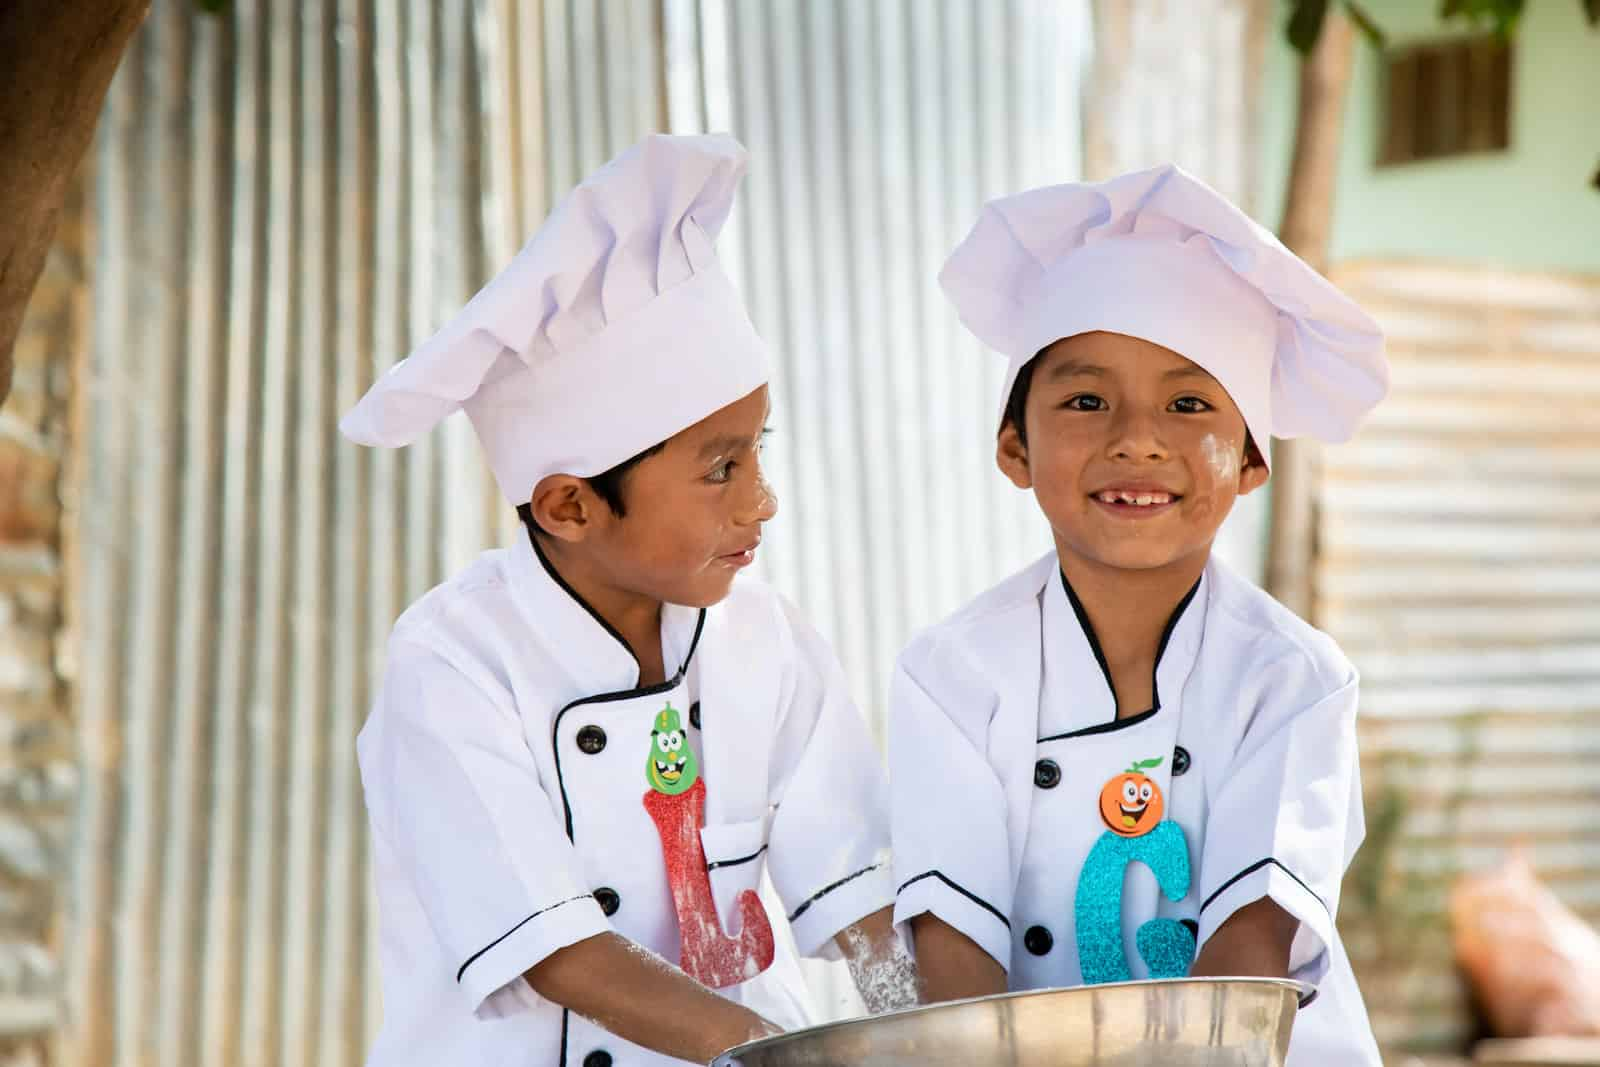 Two boys wearing chefs hats and white chefs jackets stand at a table, with their hands in a large silver bowl. One smiles at the camera and one looks at the other boy.